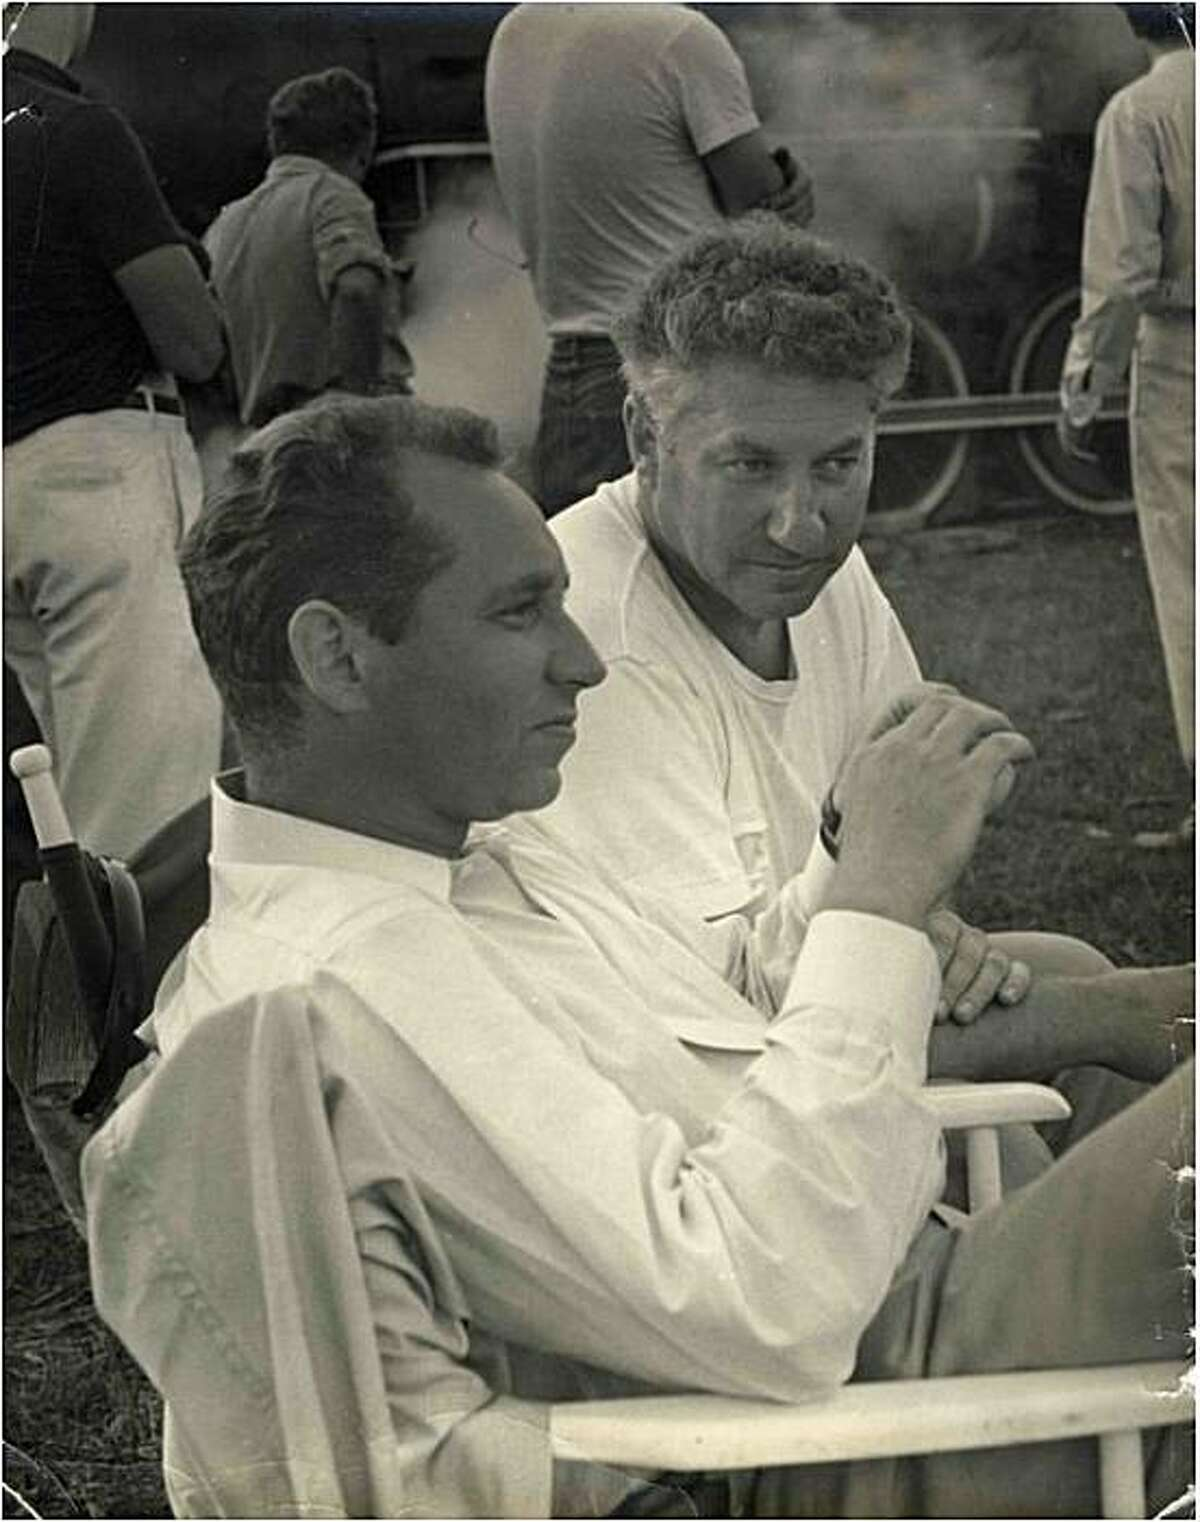 The Schulberg brothers ?' Stuart at left, Budd at right ?' worked in the same OSS film unit throughout the war and during preparation for the Nuremberg trial.